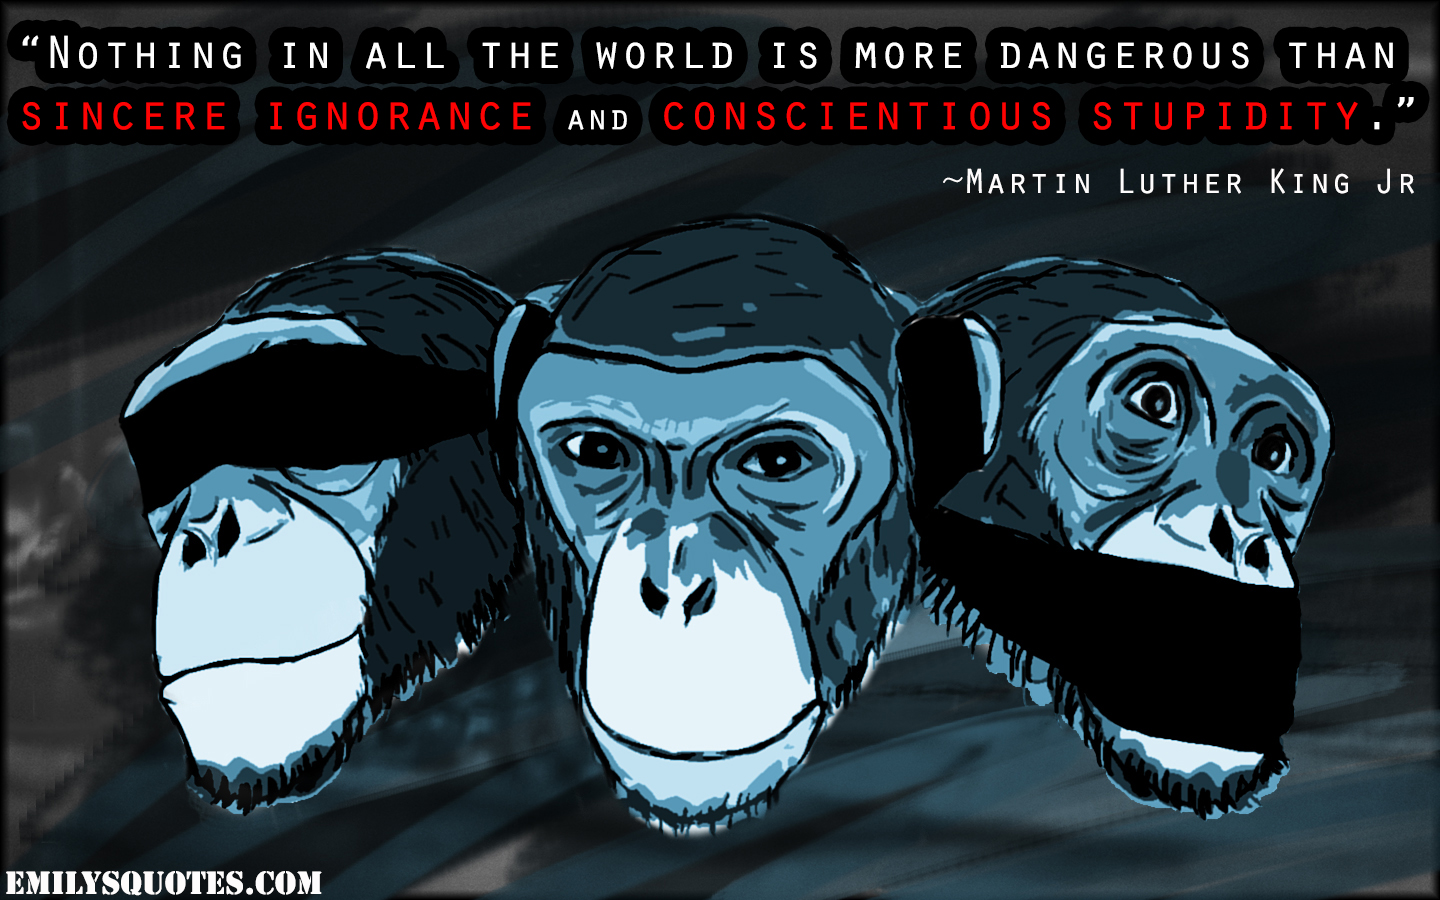 EmilysQuotes.Com - danger, ignorance, stupidity, wisdom, Martin Luther King Jr